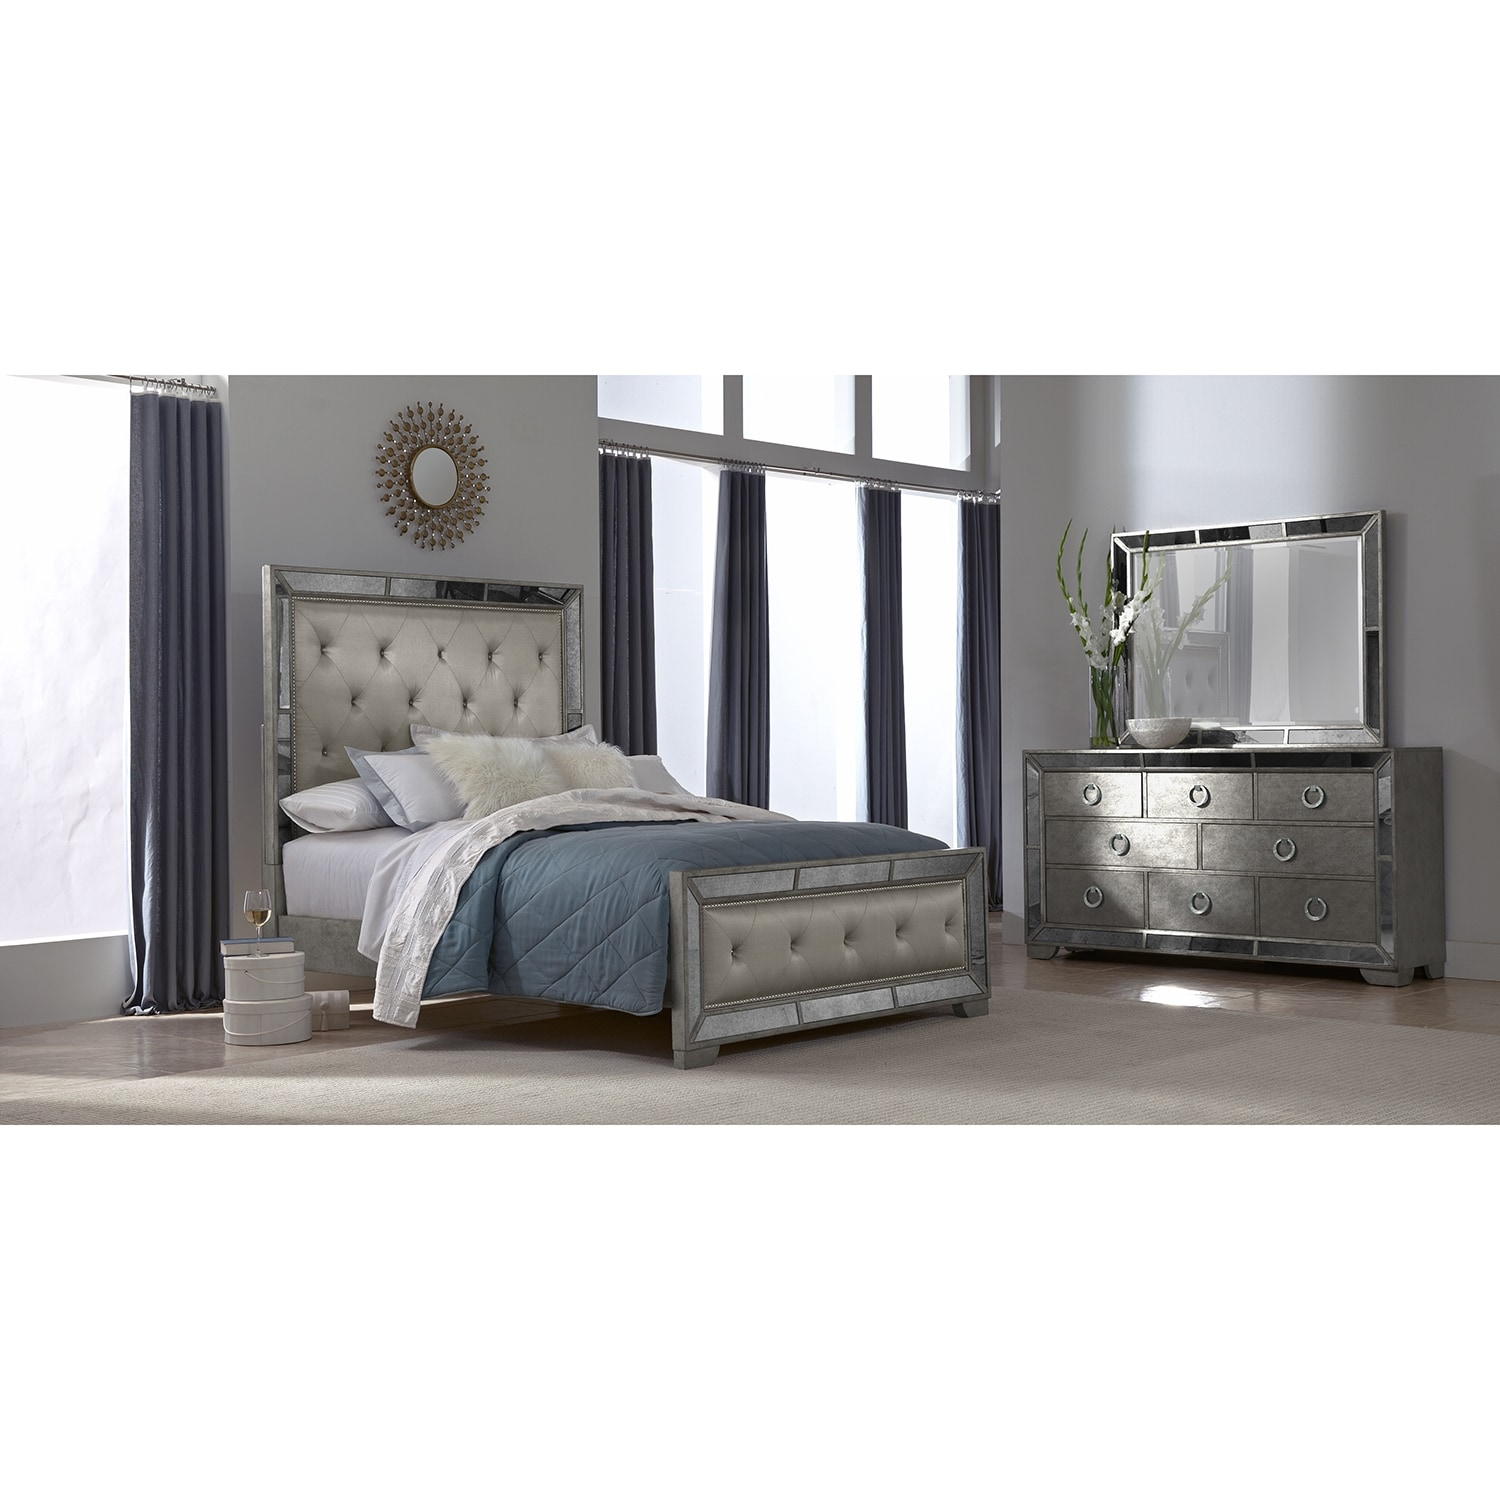 Angelina 5 pc queen bedroom american signature furniture for 5 bedroom